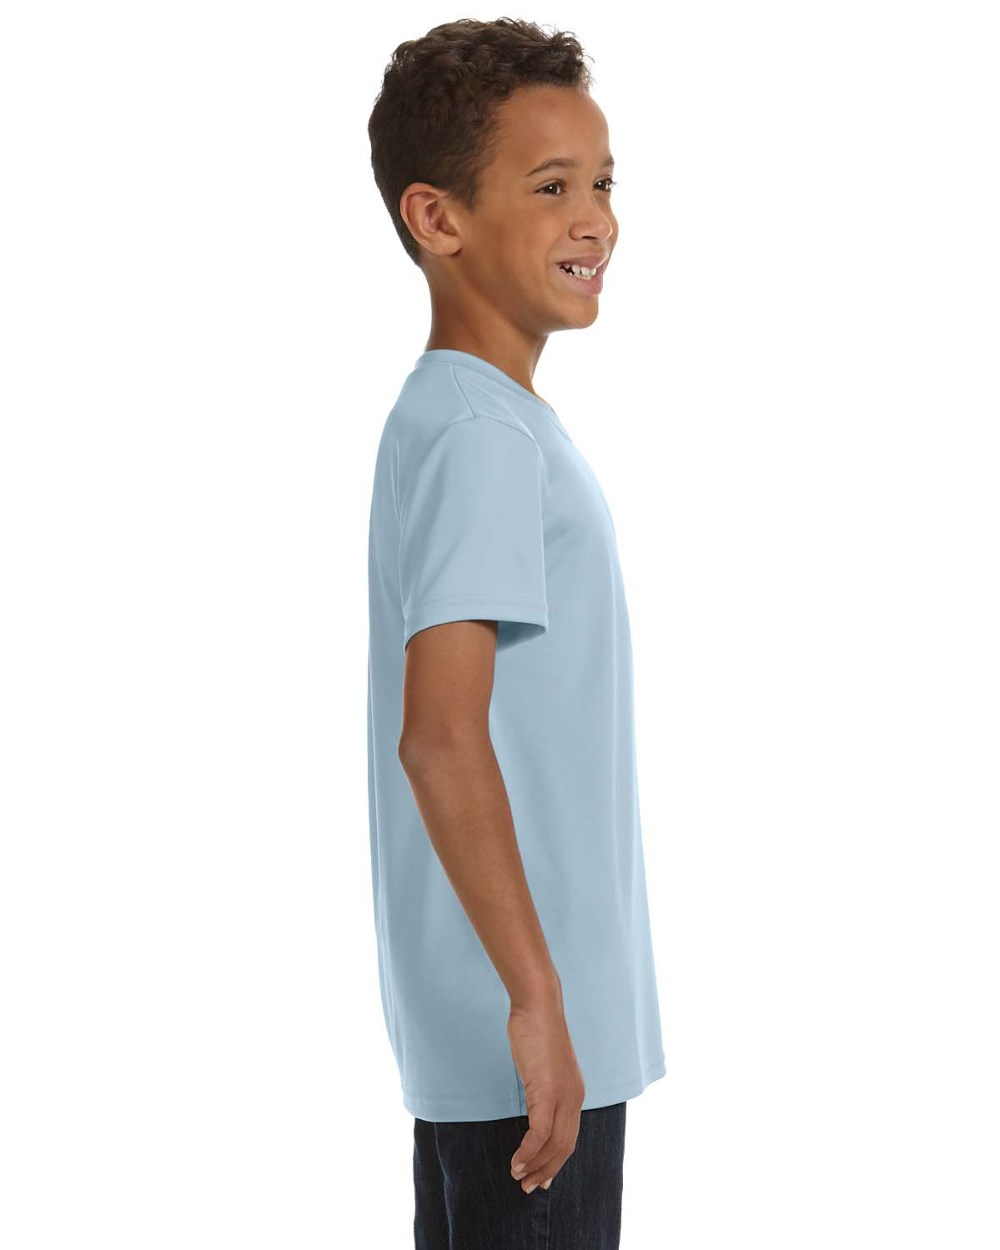 Wholesale Plain Kids Bulk Blank T Shirts Buy Plain Kids